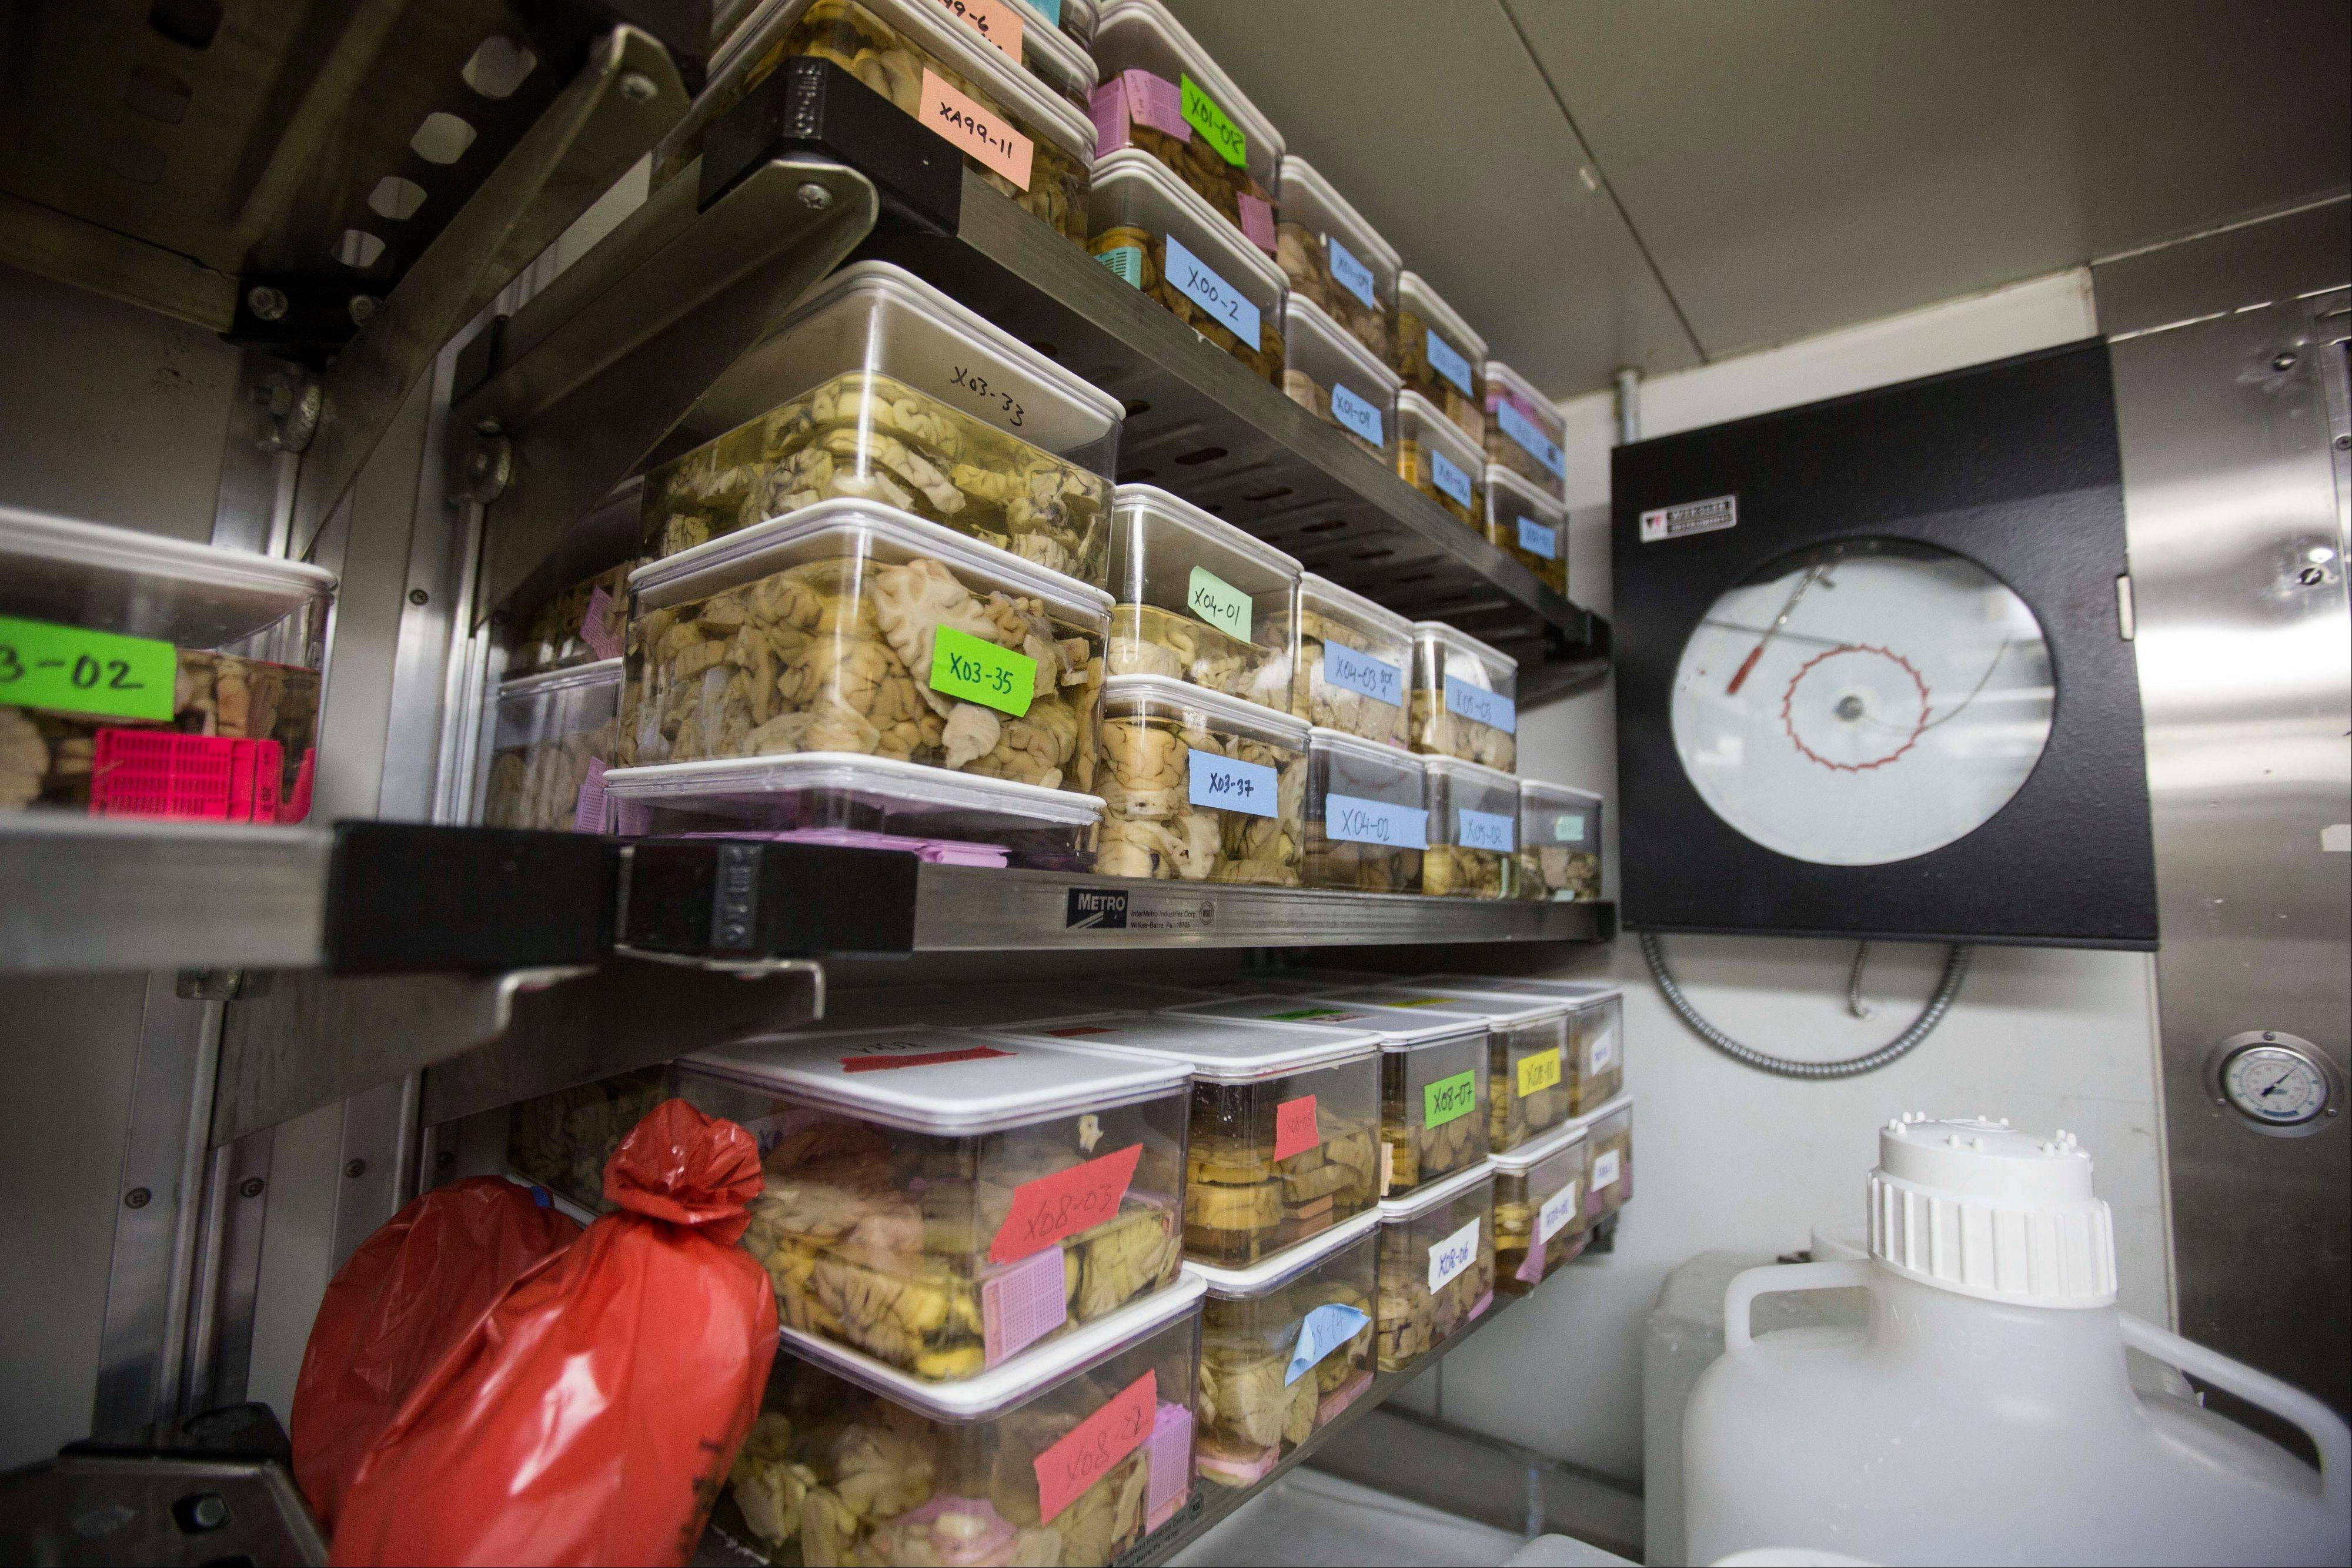 A refrigerator holds slices of human brains used for research at Northwestern University's cognitive neurology and Alzheimer's disease center in Chicago.